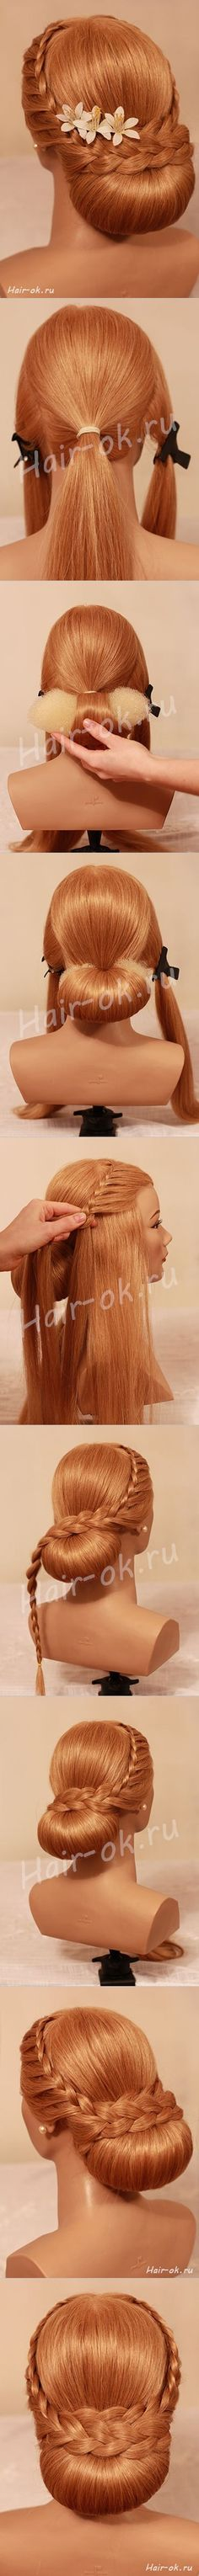 braided hair tutoria